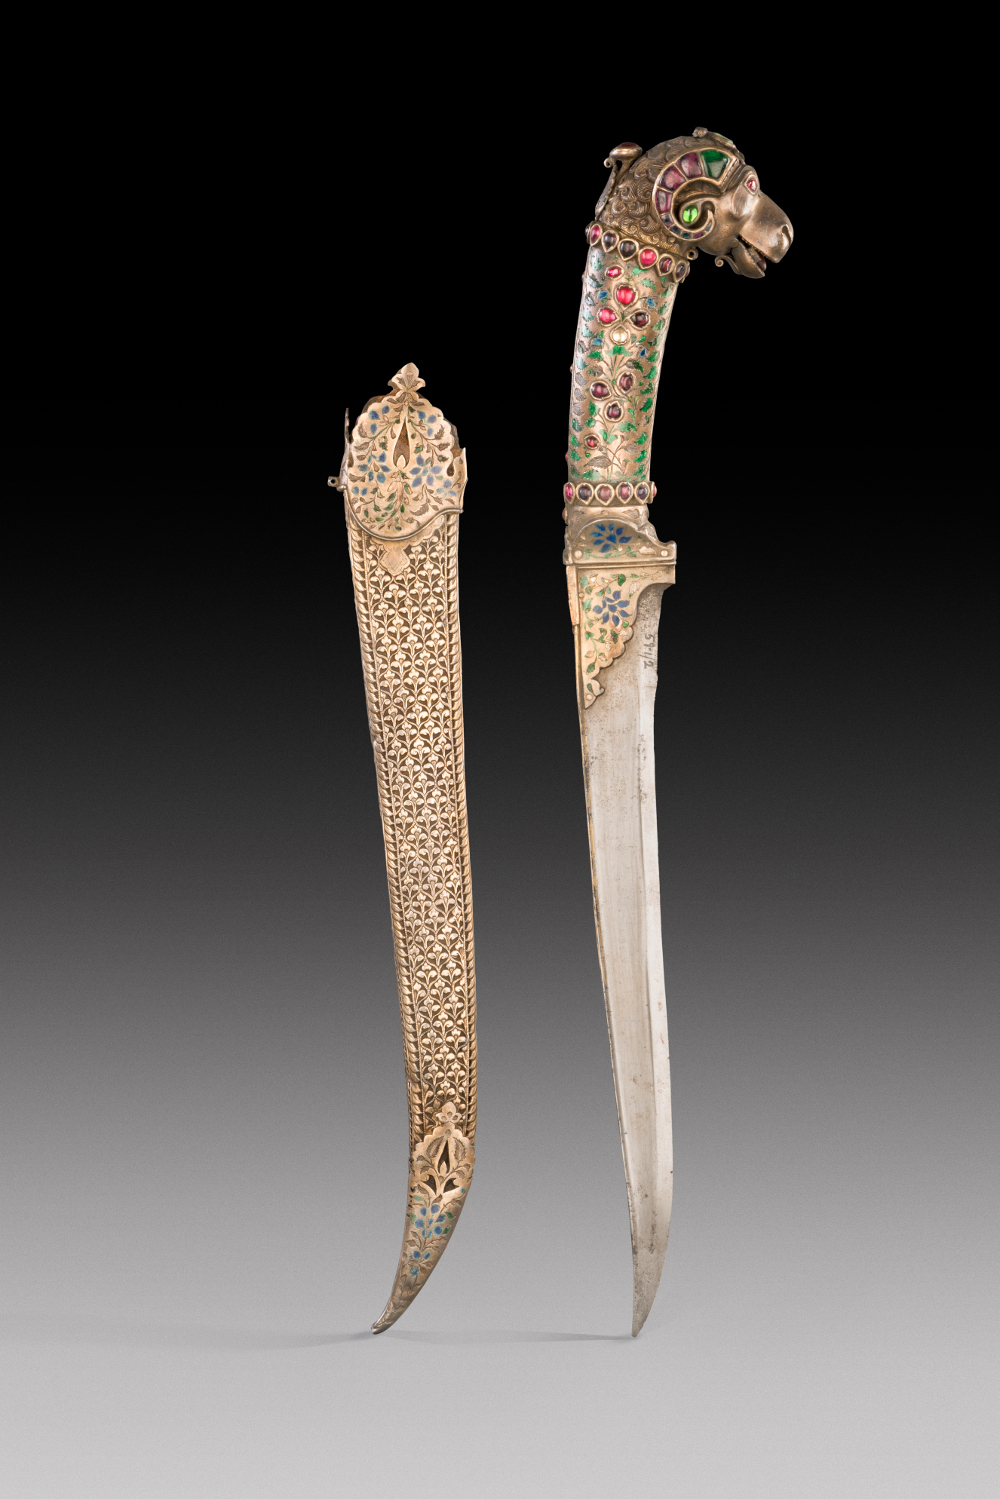 Enameled dagger - Steel, ivory, wood, gilded, inlaid with rubies and emeraldsAD 1720–1770Rajasthan, IndiaNational Museum, New DelhiThe subject of the painting on this shield is Maharana Sangram Singh II – ruler of the Rajput court of Mewar from 1690 to 1734. He is shown practicing his archery, hunting tigers, and having amorous encounters in the forest, while the women of the court expectantly await his return. Messengers would carry a royal shield to allow them a safe and speedy passage, and in Rajput courts they had long been used as trays for royal gifts. The elegant dagger is of a type that was comfortably worn tucked in the sash-belt and could have been used by either a man or woman.